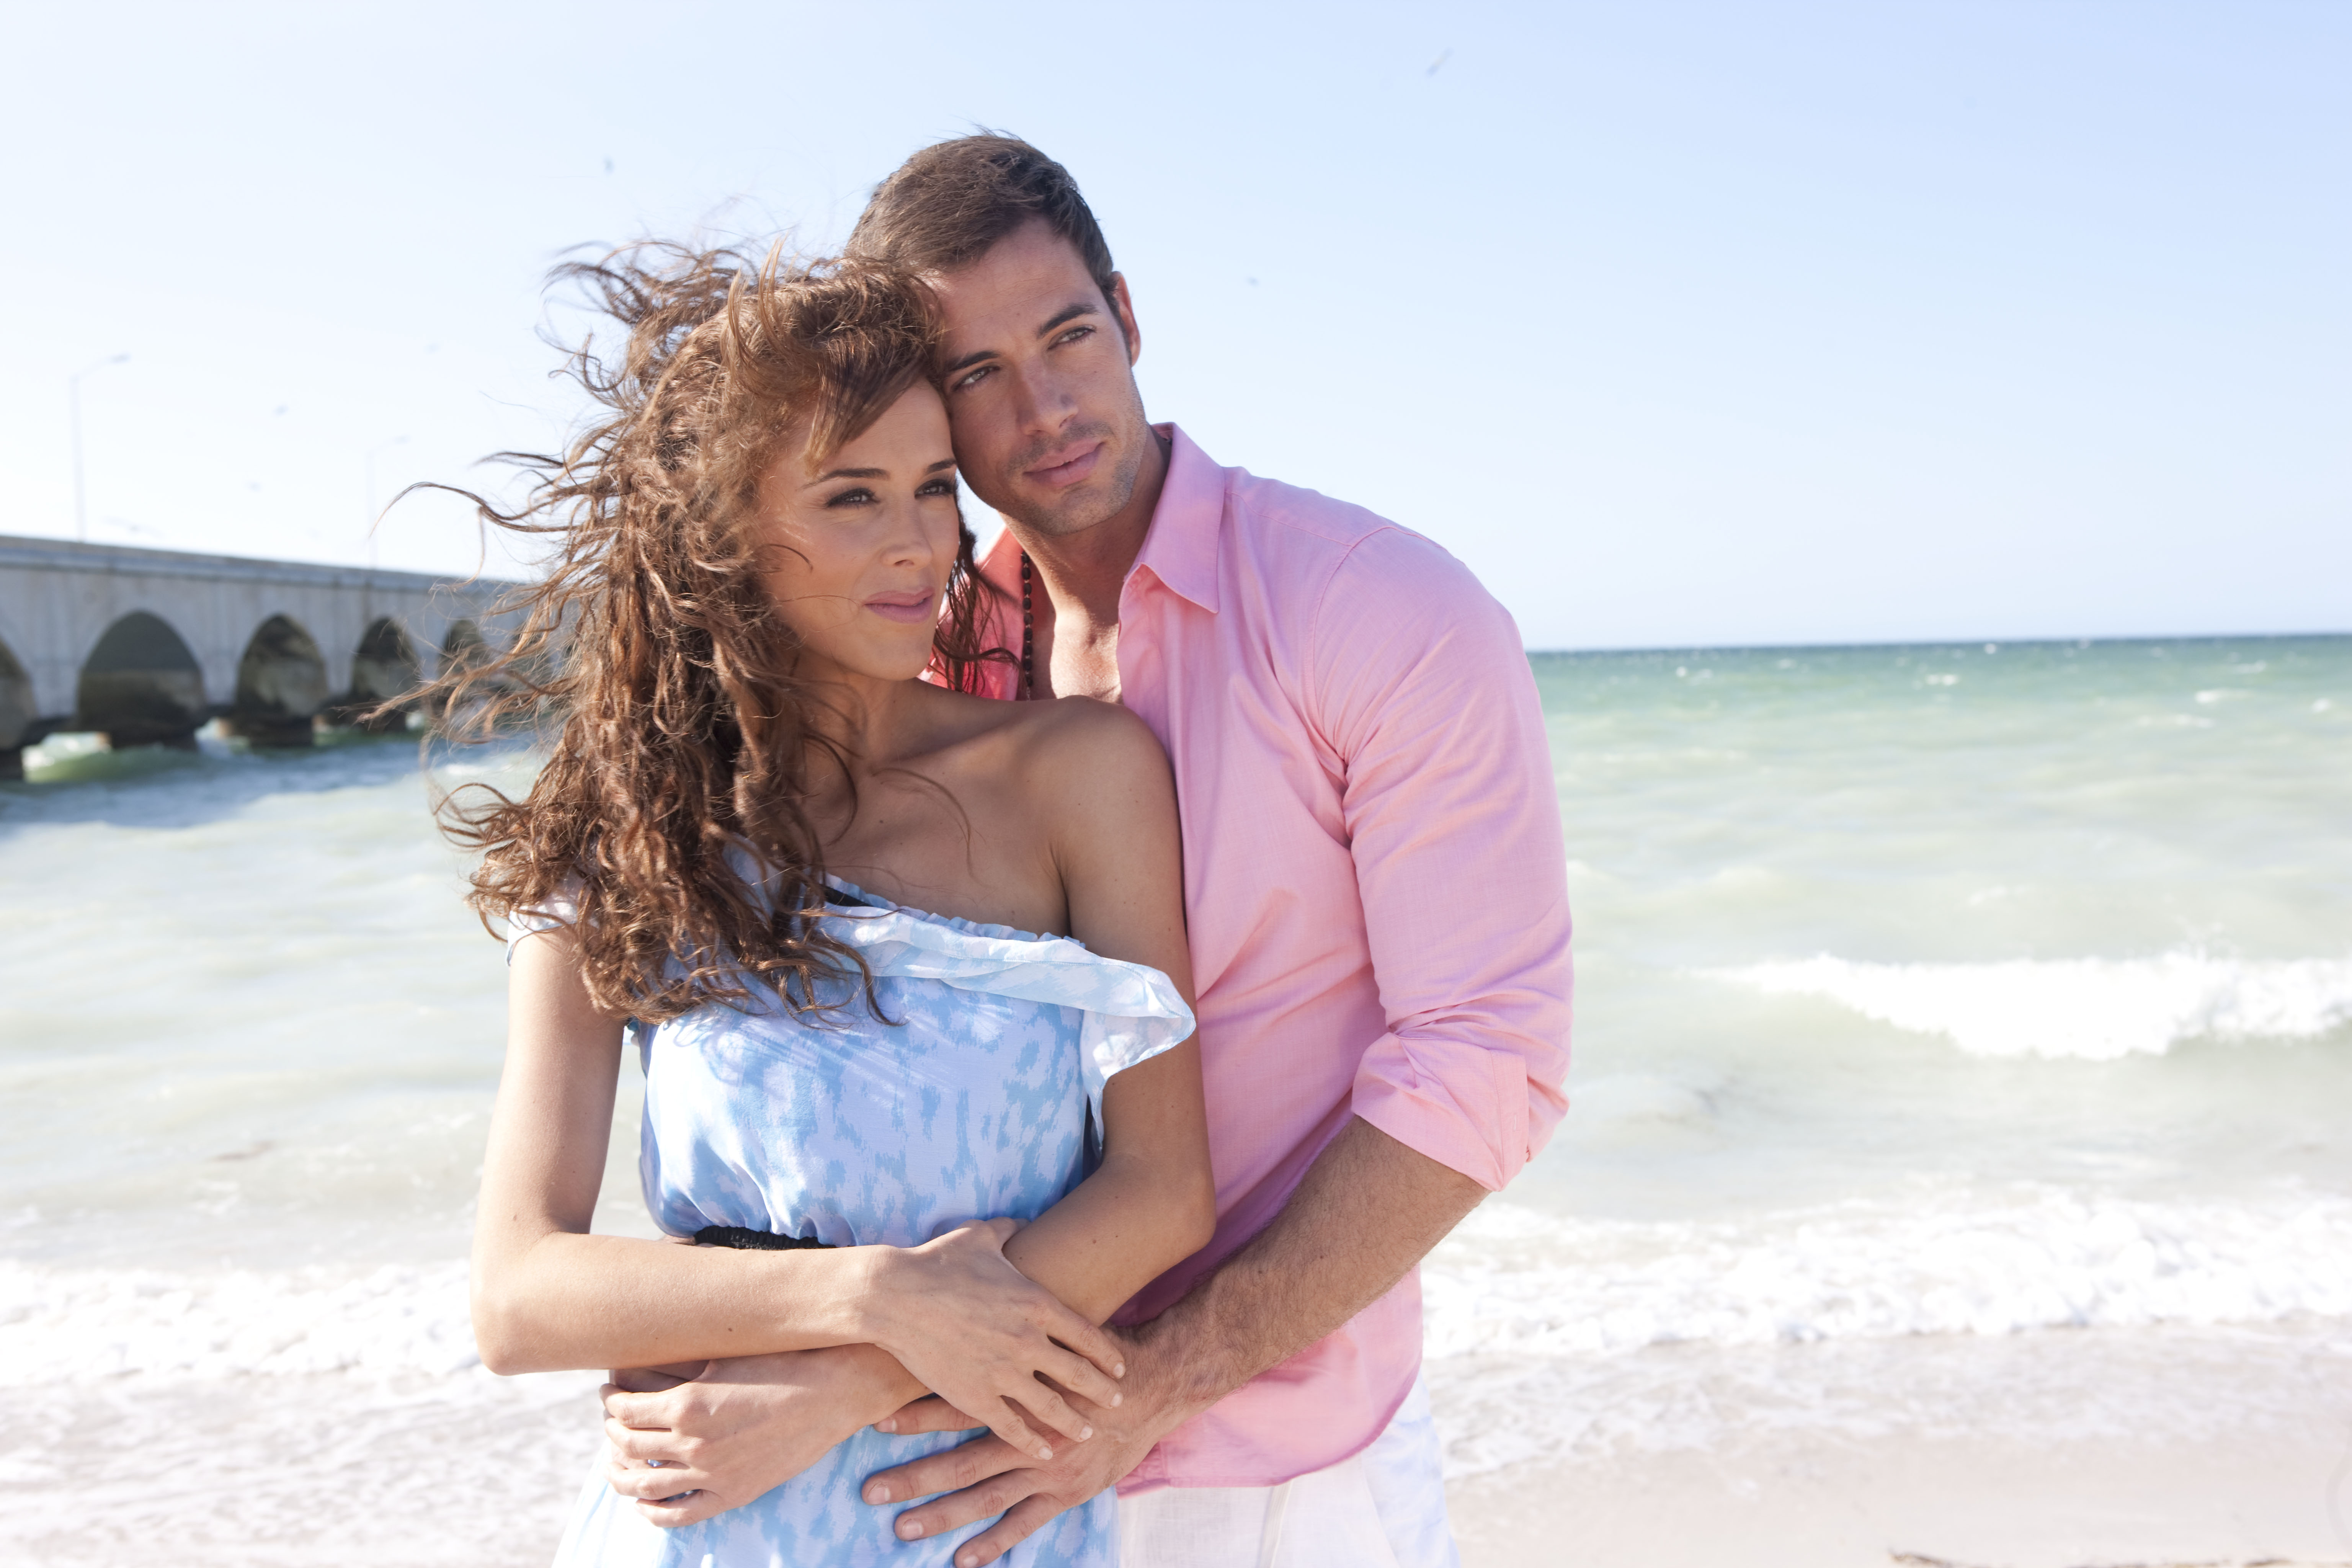 revelo singles & personals Matchcom is the number one destination for online dating with more dates, more relationships, & more marriages than any other dating or personals site.